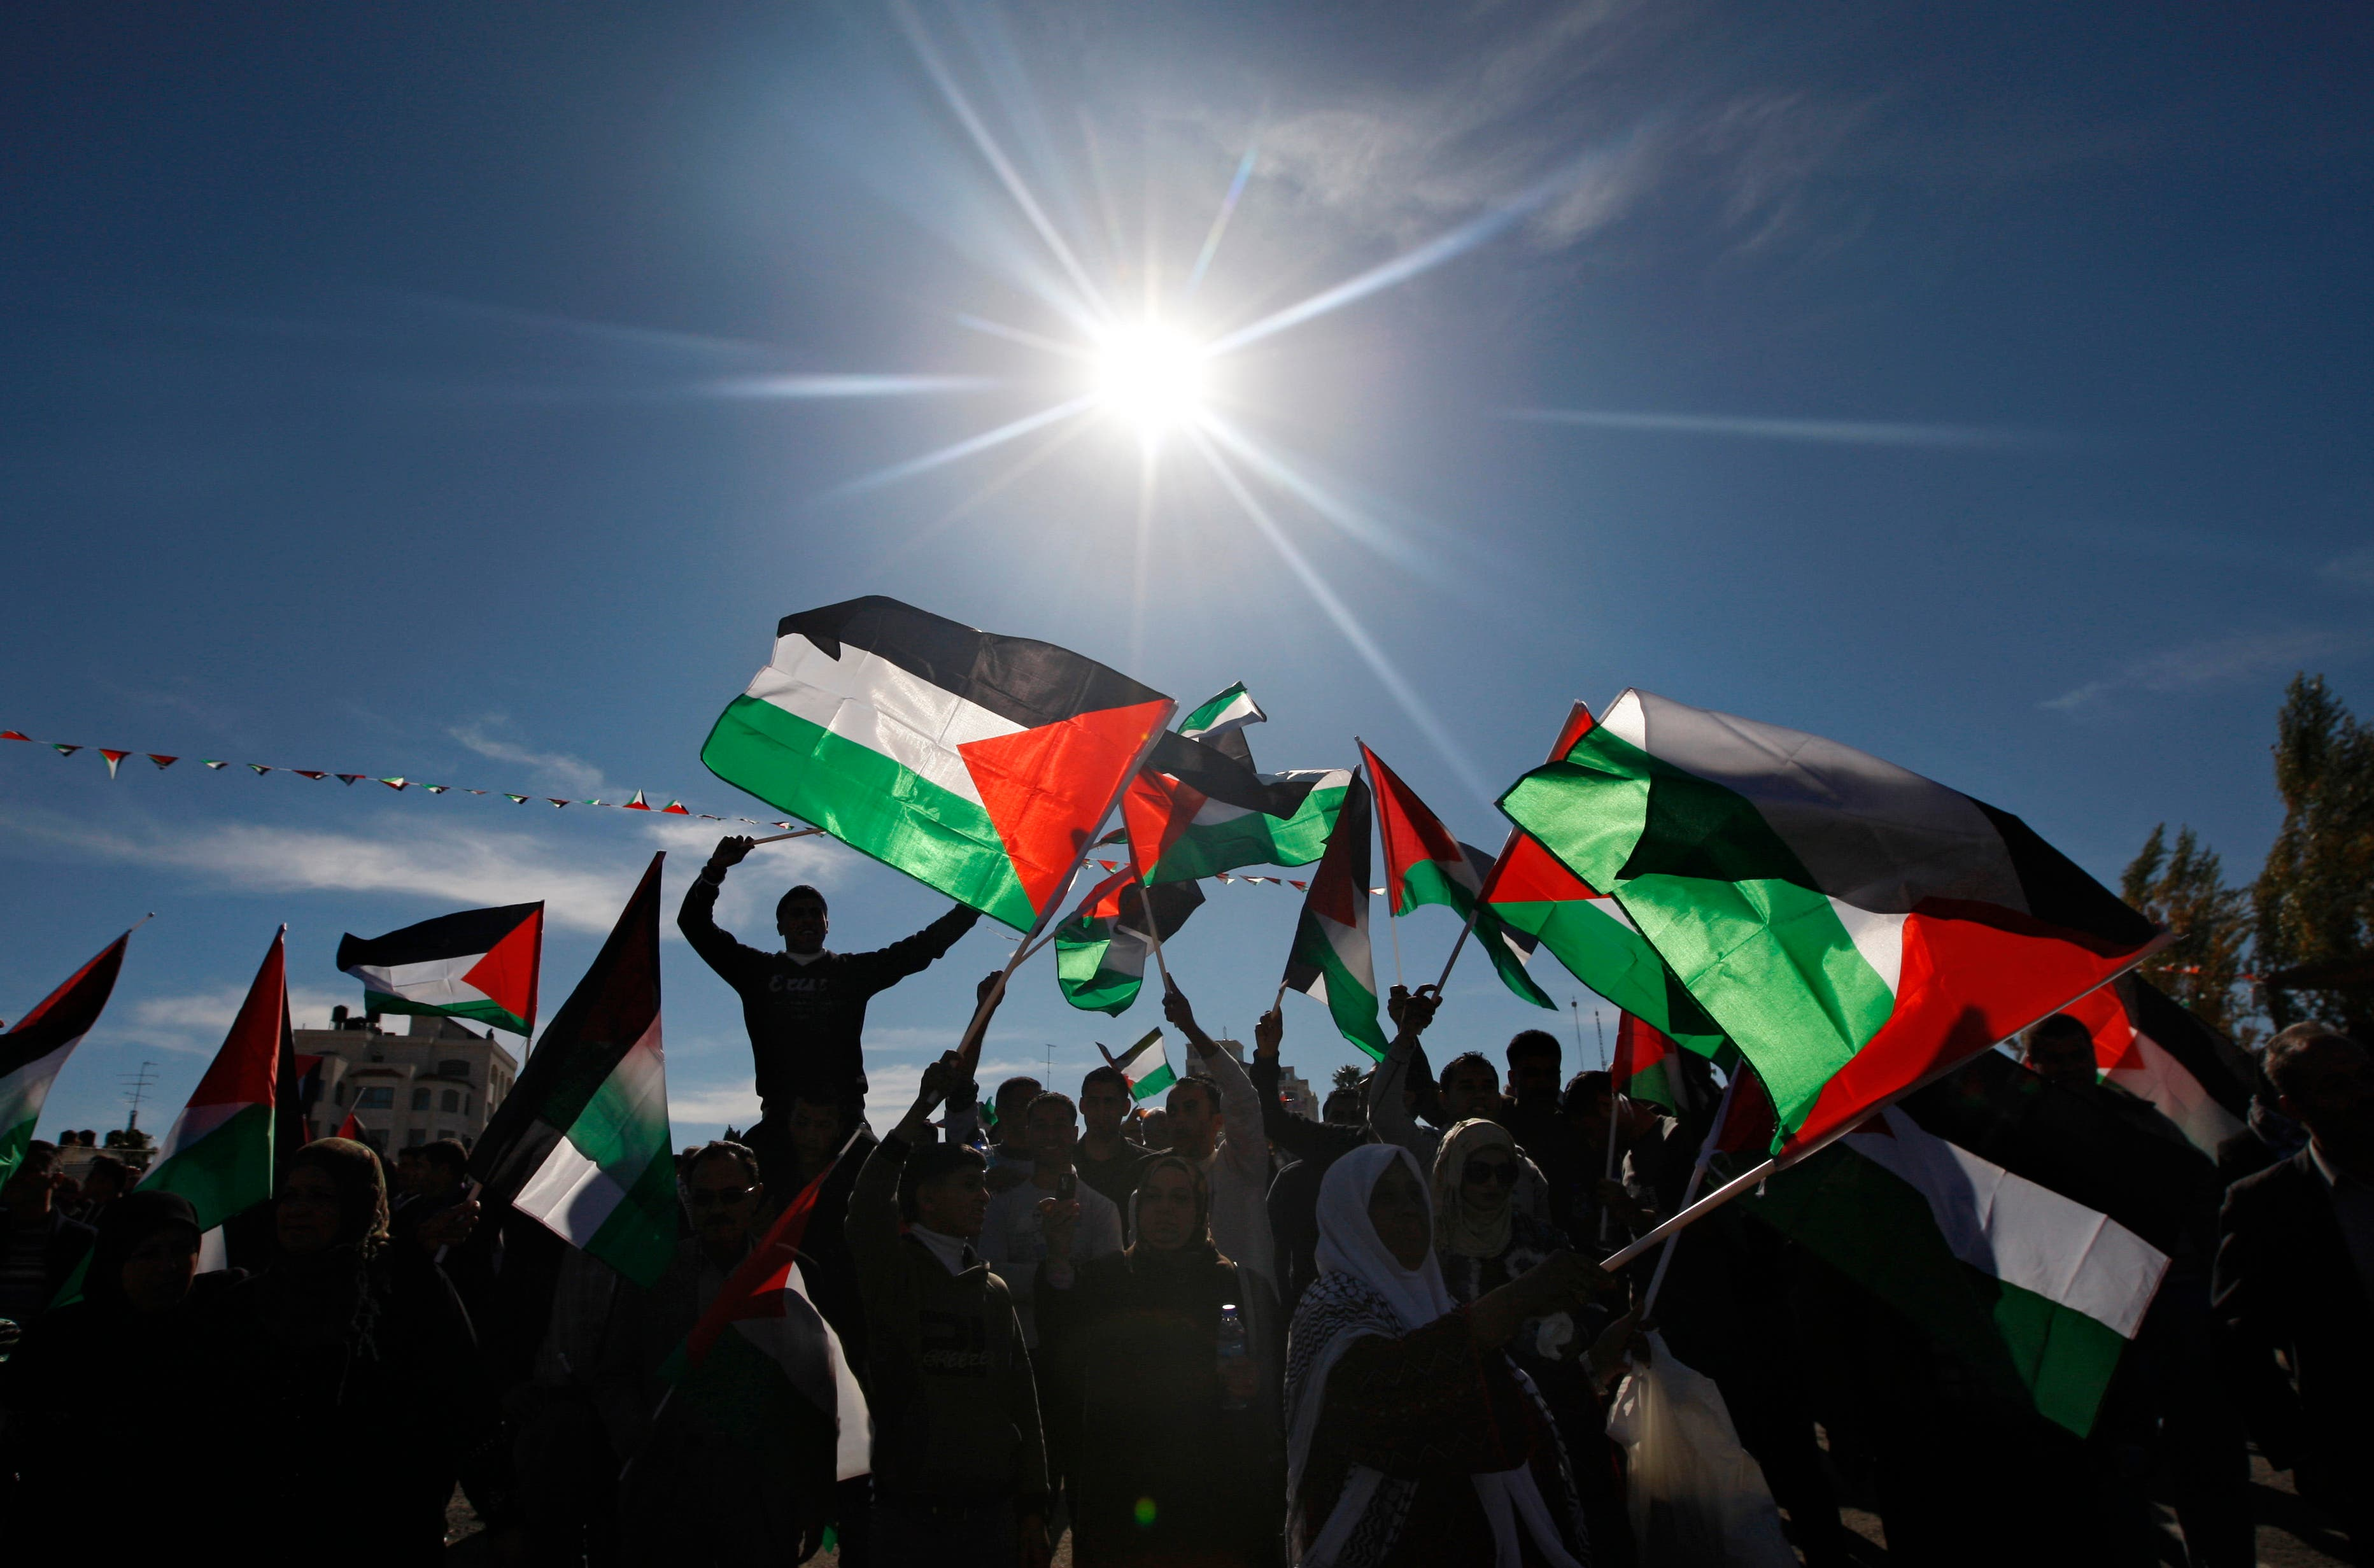 Palestinians wave flags as they celebrate their successful bid to win U.N. statehood recognition in the West Bank city of Ramallah, Sunday, Dec. 2, 2012. (AP)